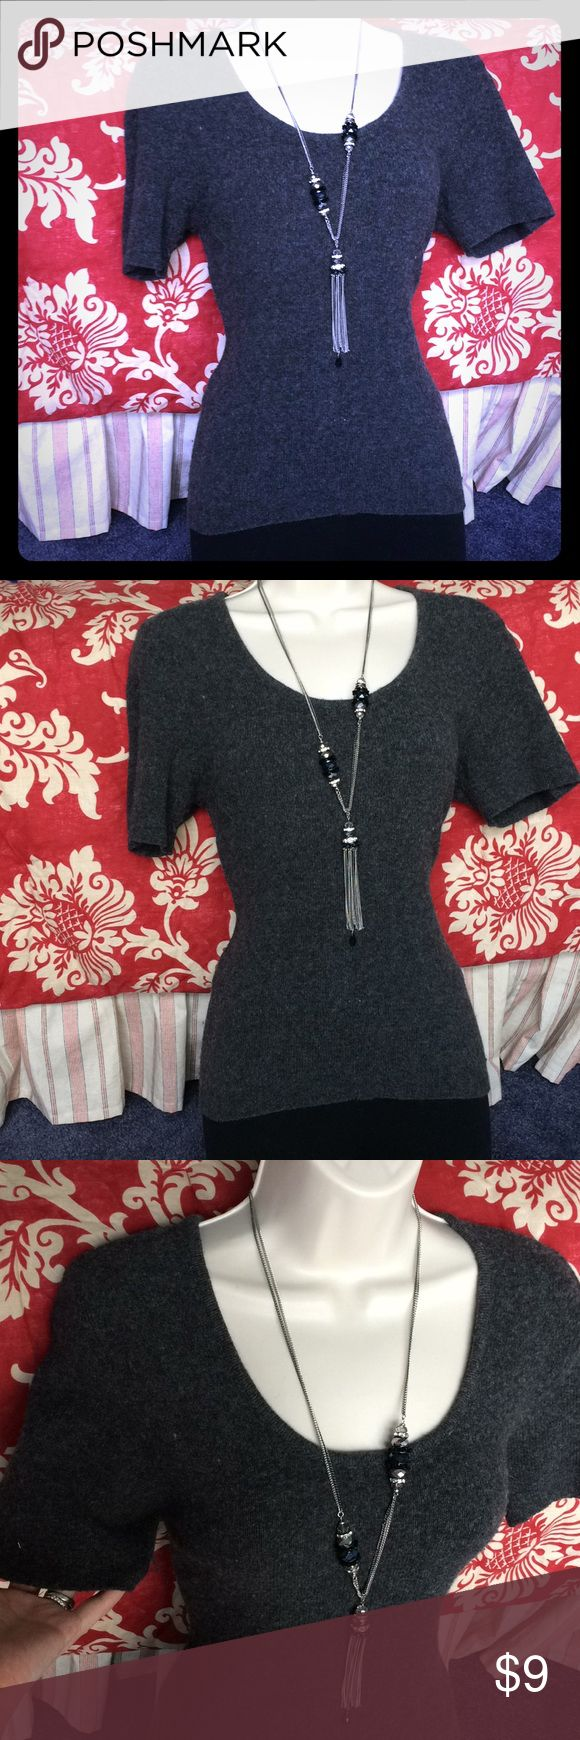 Express short sleeve scoopneck sexy secretary Extremely sexy extremely warm bring out your sexy secretary in this short sleeve charcoal gray mohair figure flattering express sweater. pair with jeans And boots or a high waisted pencil skirt and heels for a great look at work or a date. I have dressed it up with some jewelry can go with any type of jewelry you have! Size xs but it's express stretch. Accepting reasonable offers. Cleaning out my closet saving for the holidays! Bundle to save…